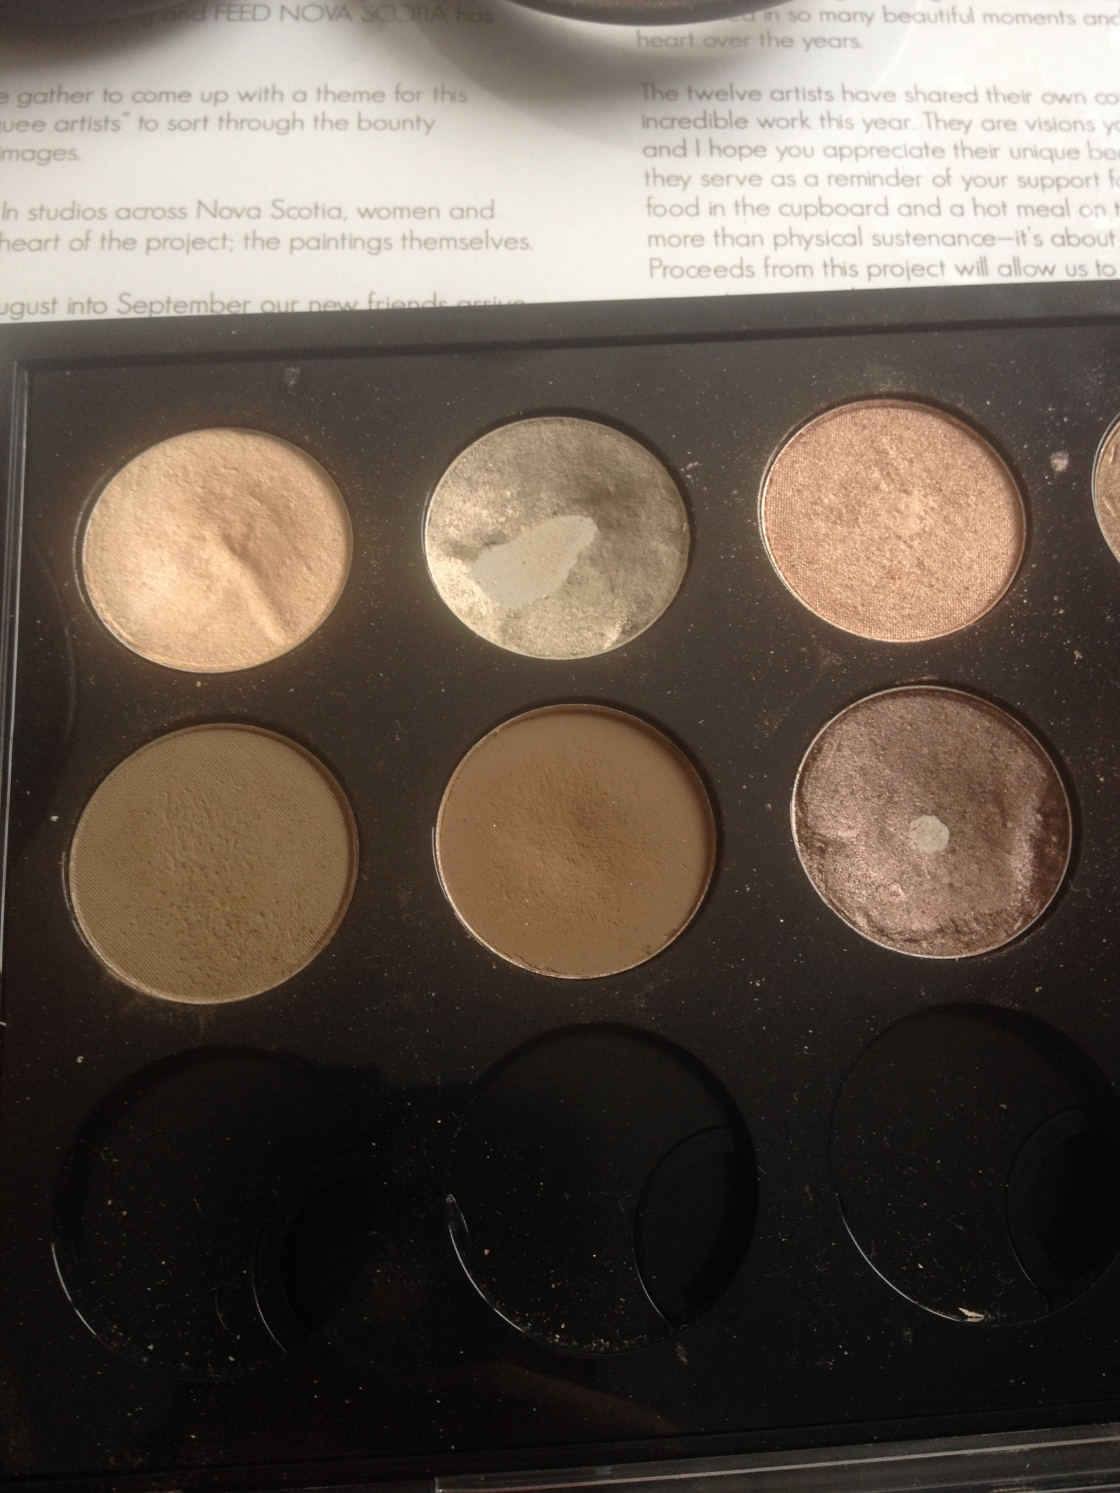 top: Dazzlelight, Vex, All That Glitters bottom: Coquette, Charcoal Brown, Satin Taupe